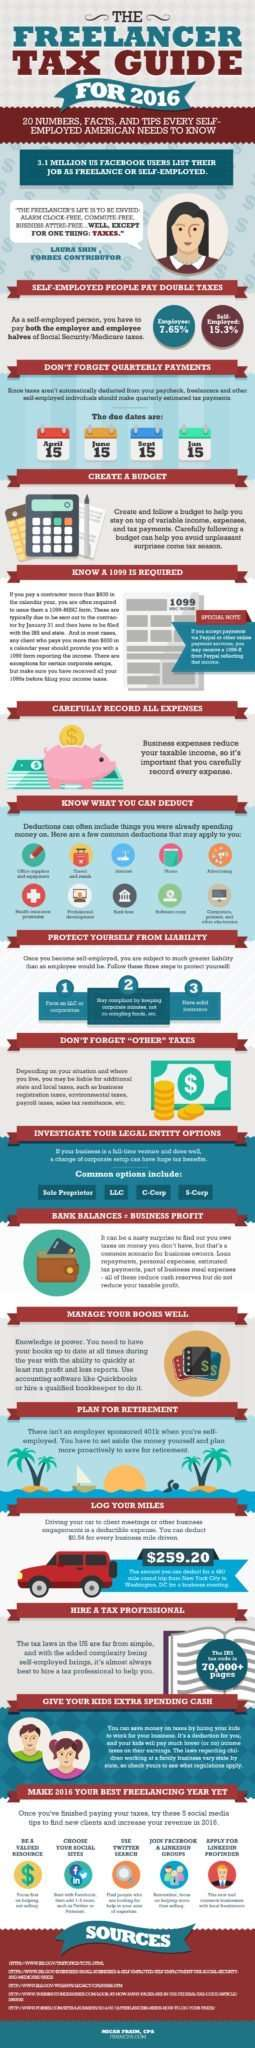 Filing Freelance Taxes: A Handy Cheat Sheet — Infographic